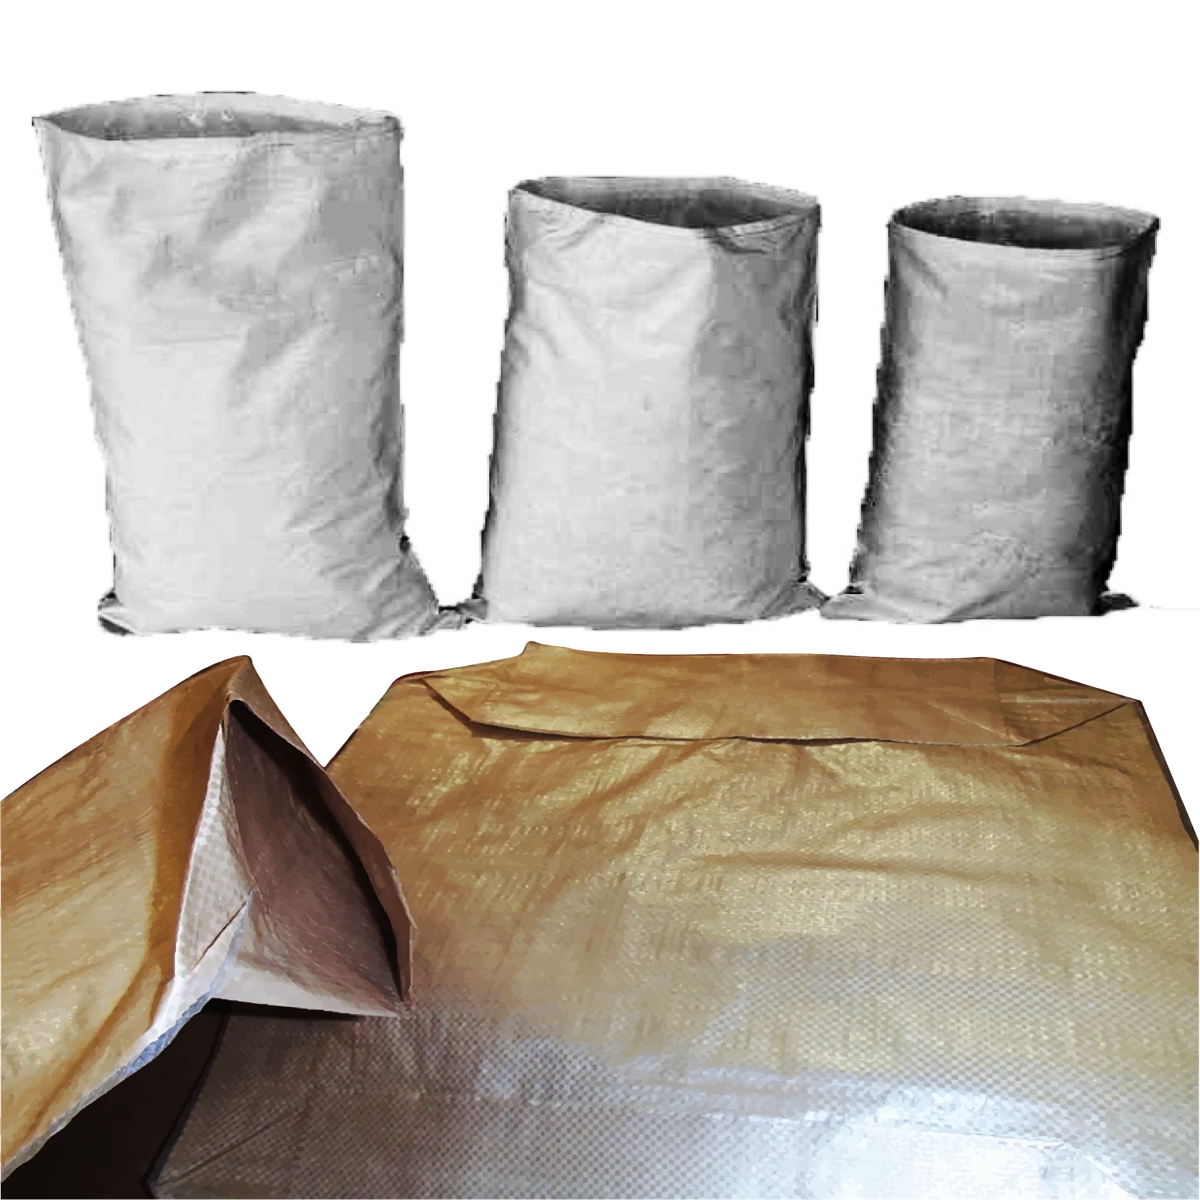 Flexible Packaging - Bulk Bags, Sandbags and More 7